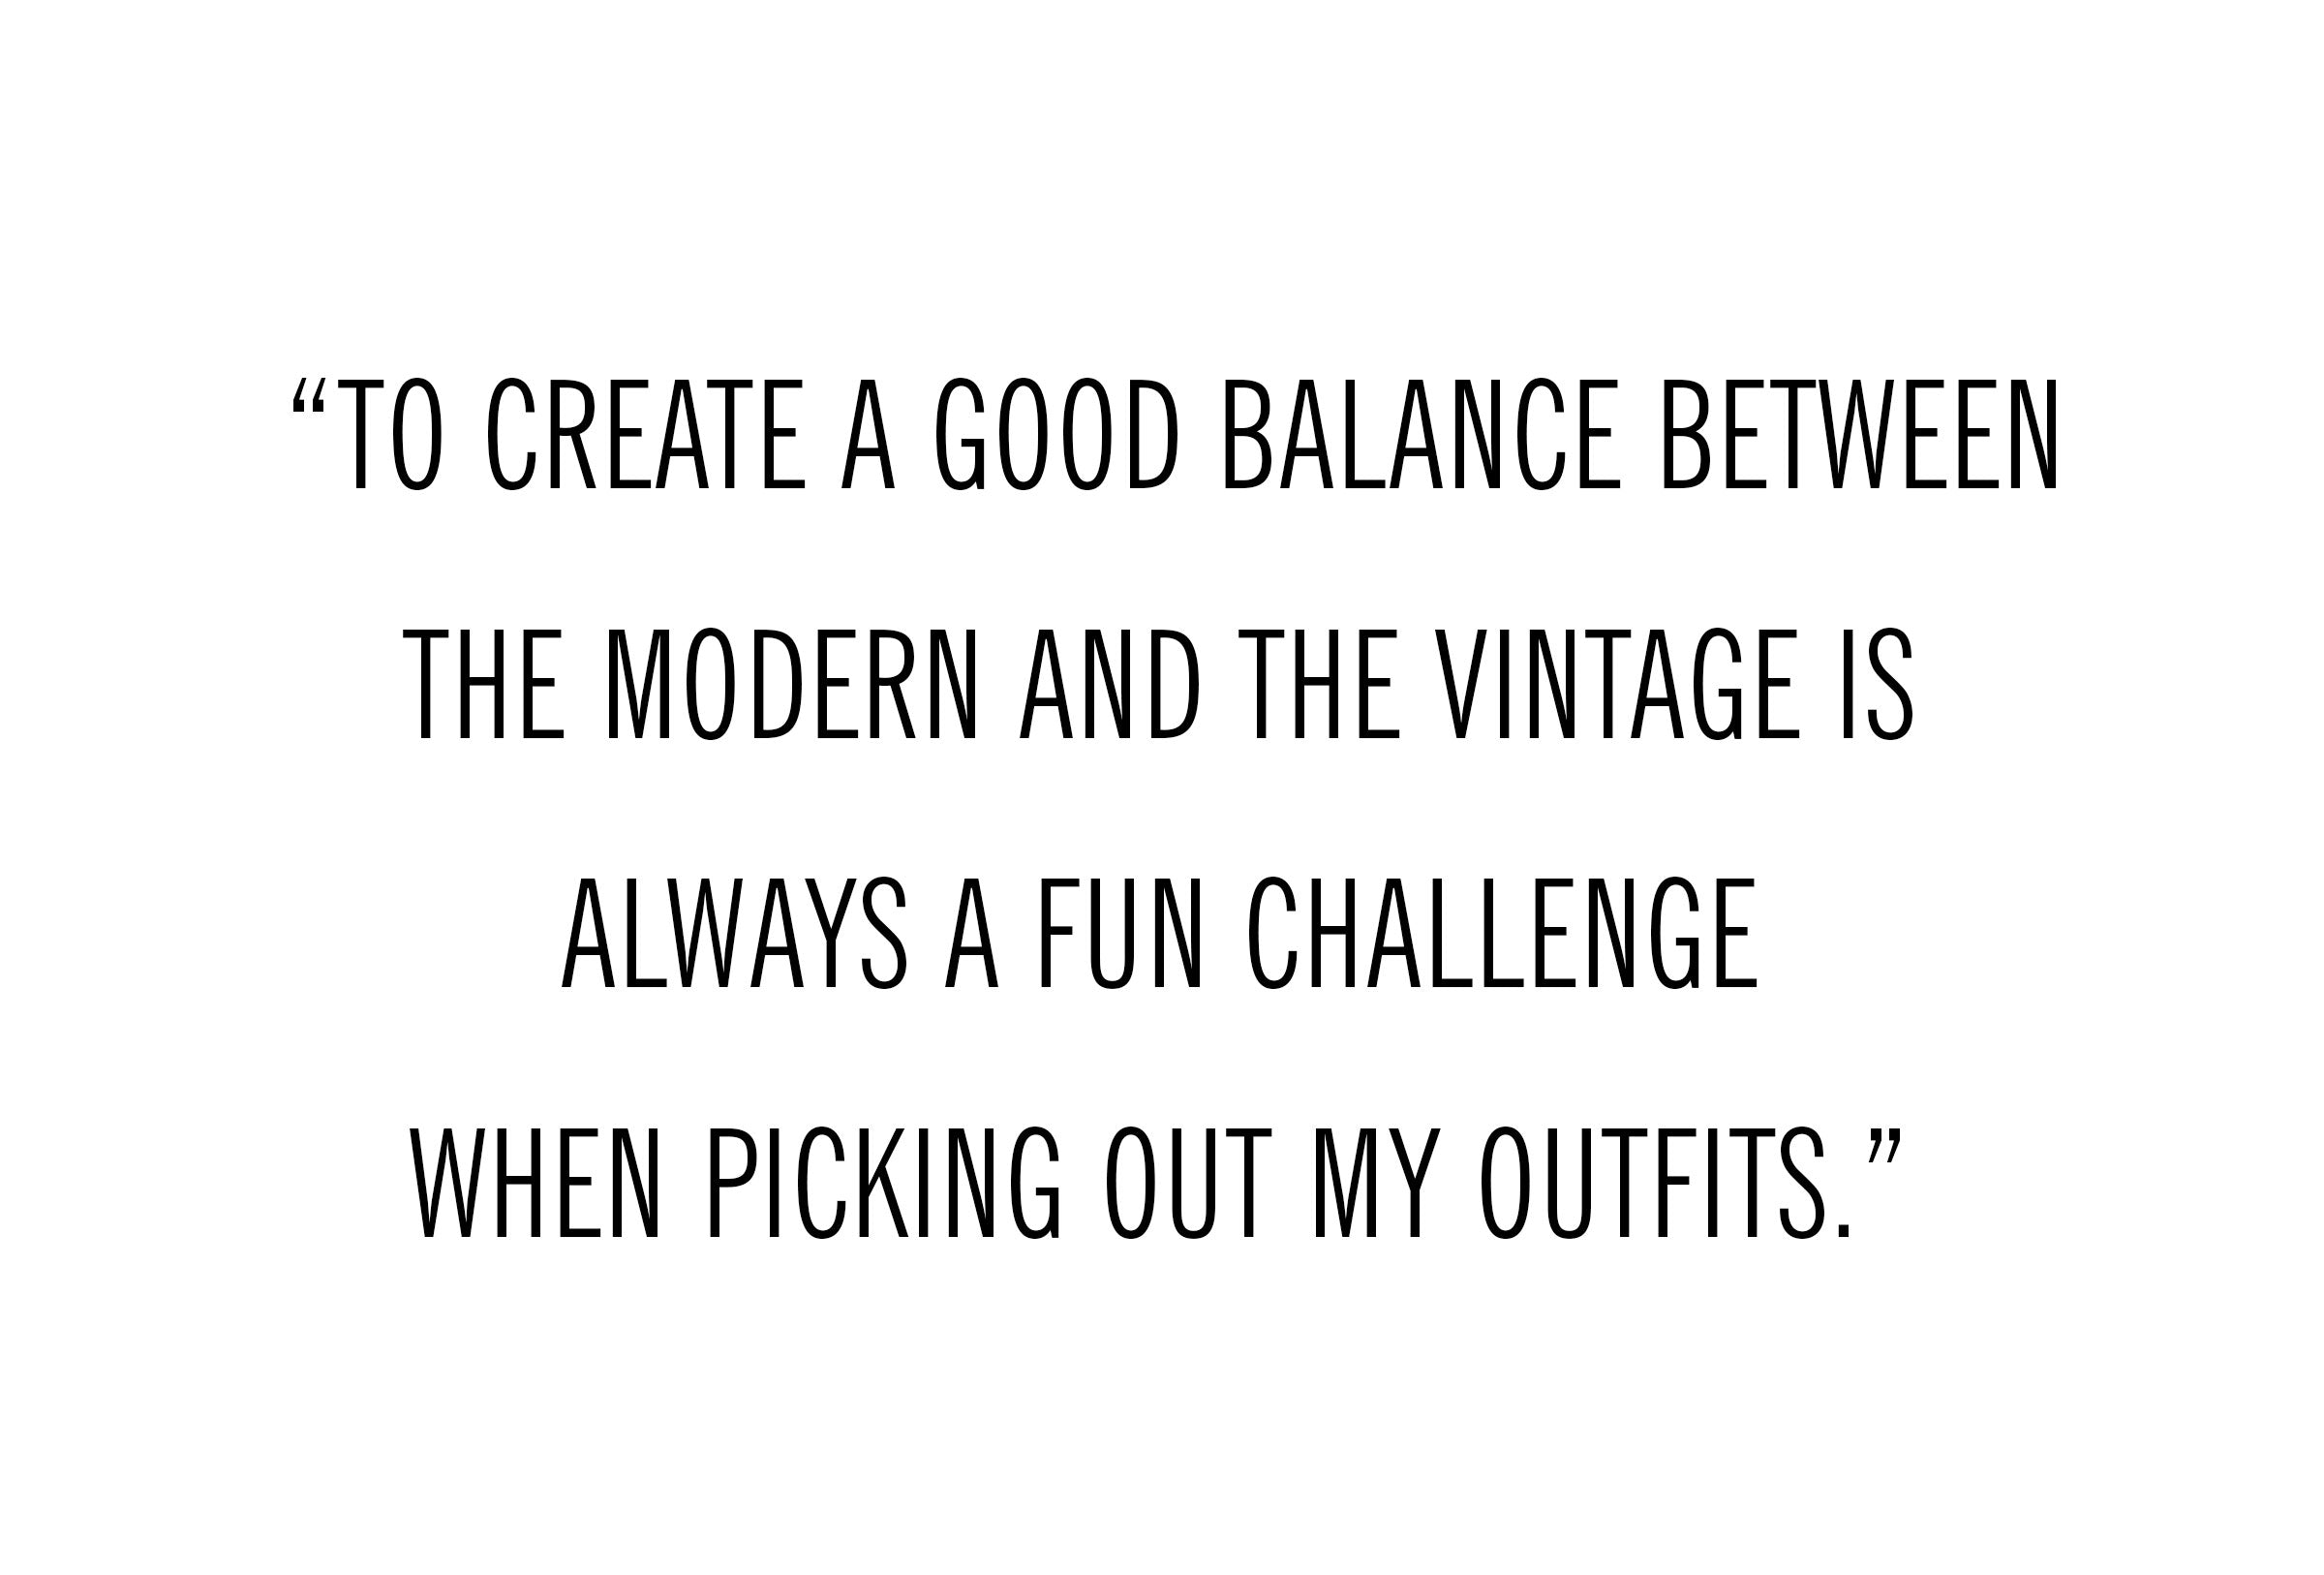 """To create a good balance between the modern and the vintage is always a fun challenge when picking out my outfits."" - Michael Cortina"